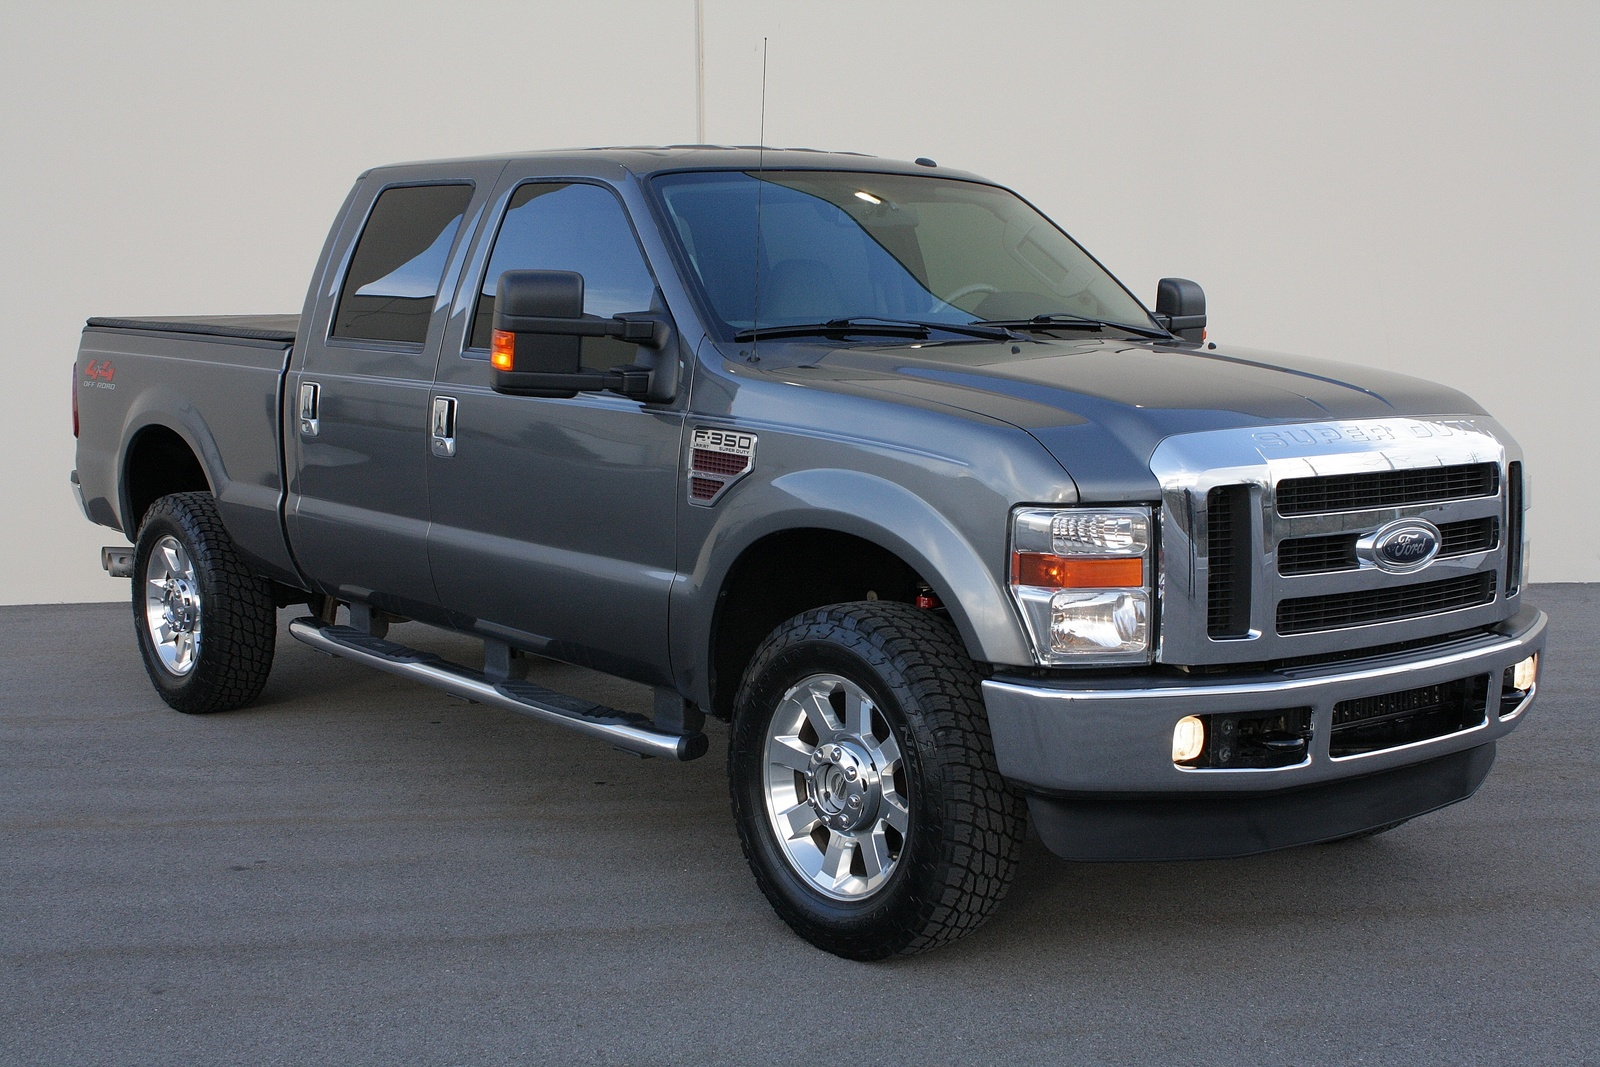 2009 ford f 350 super duty pictures cargurus. Cars Review. Best American Auto & Cars Review